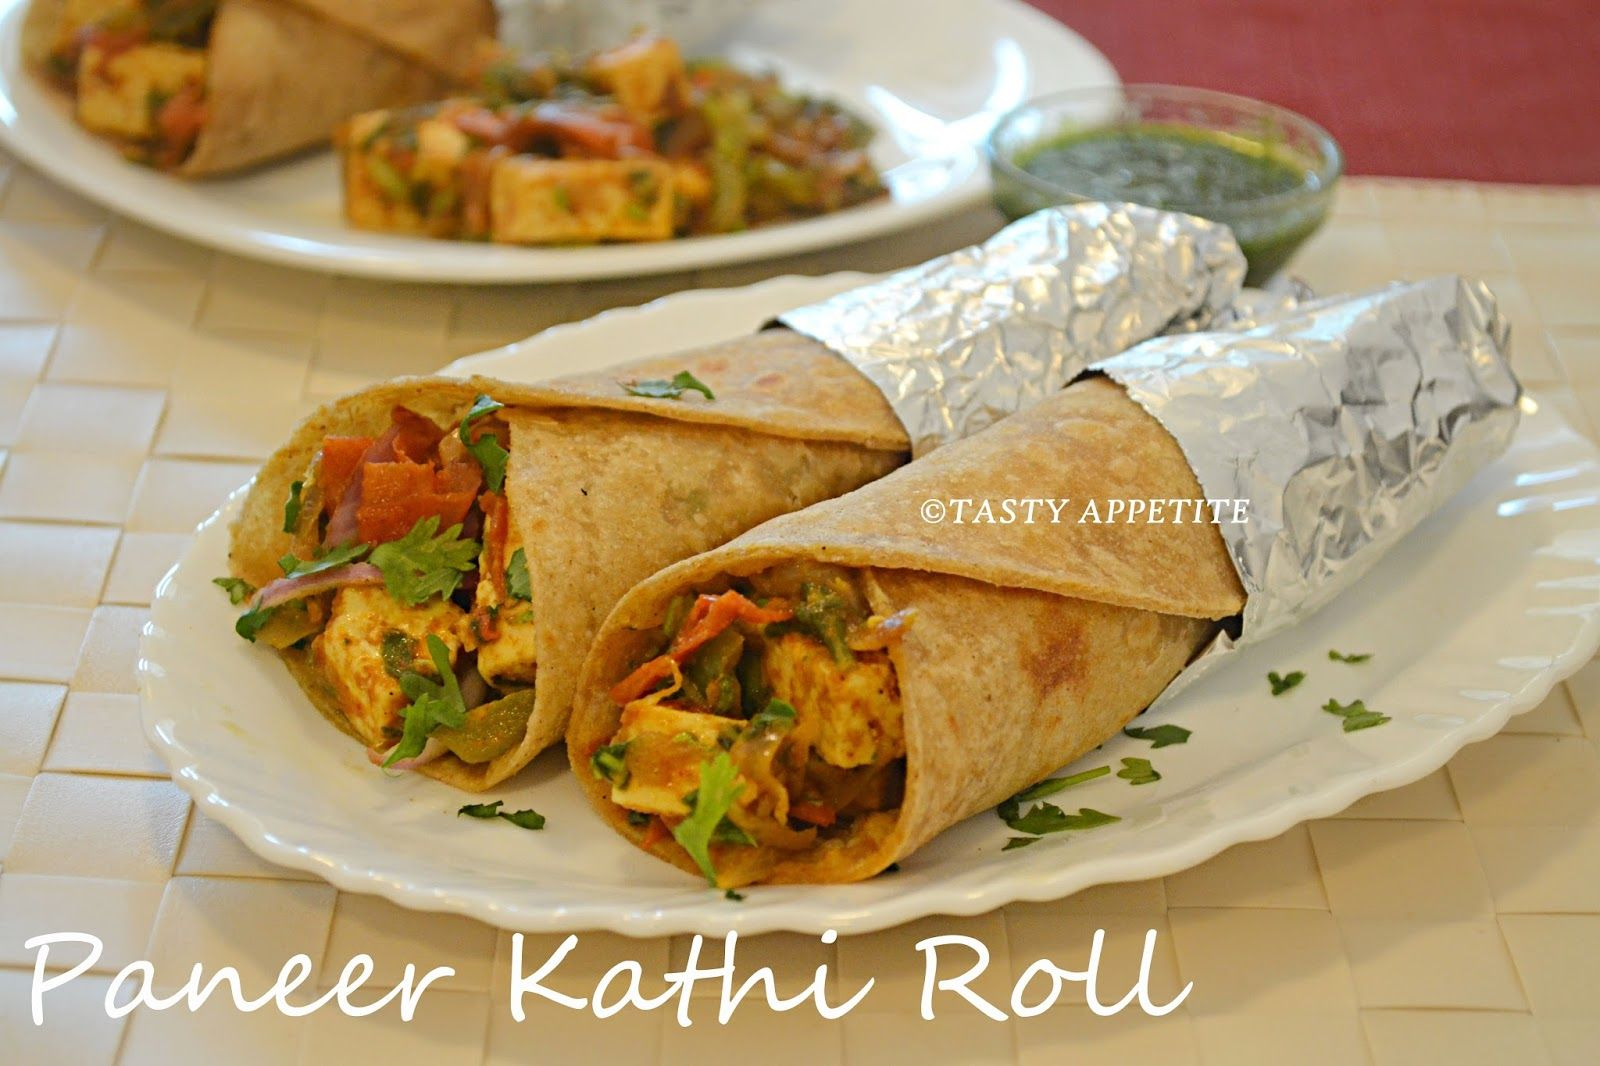 Tasty Appetite: Top 15 Recipes of 2014..!!